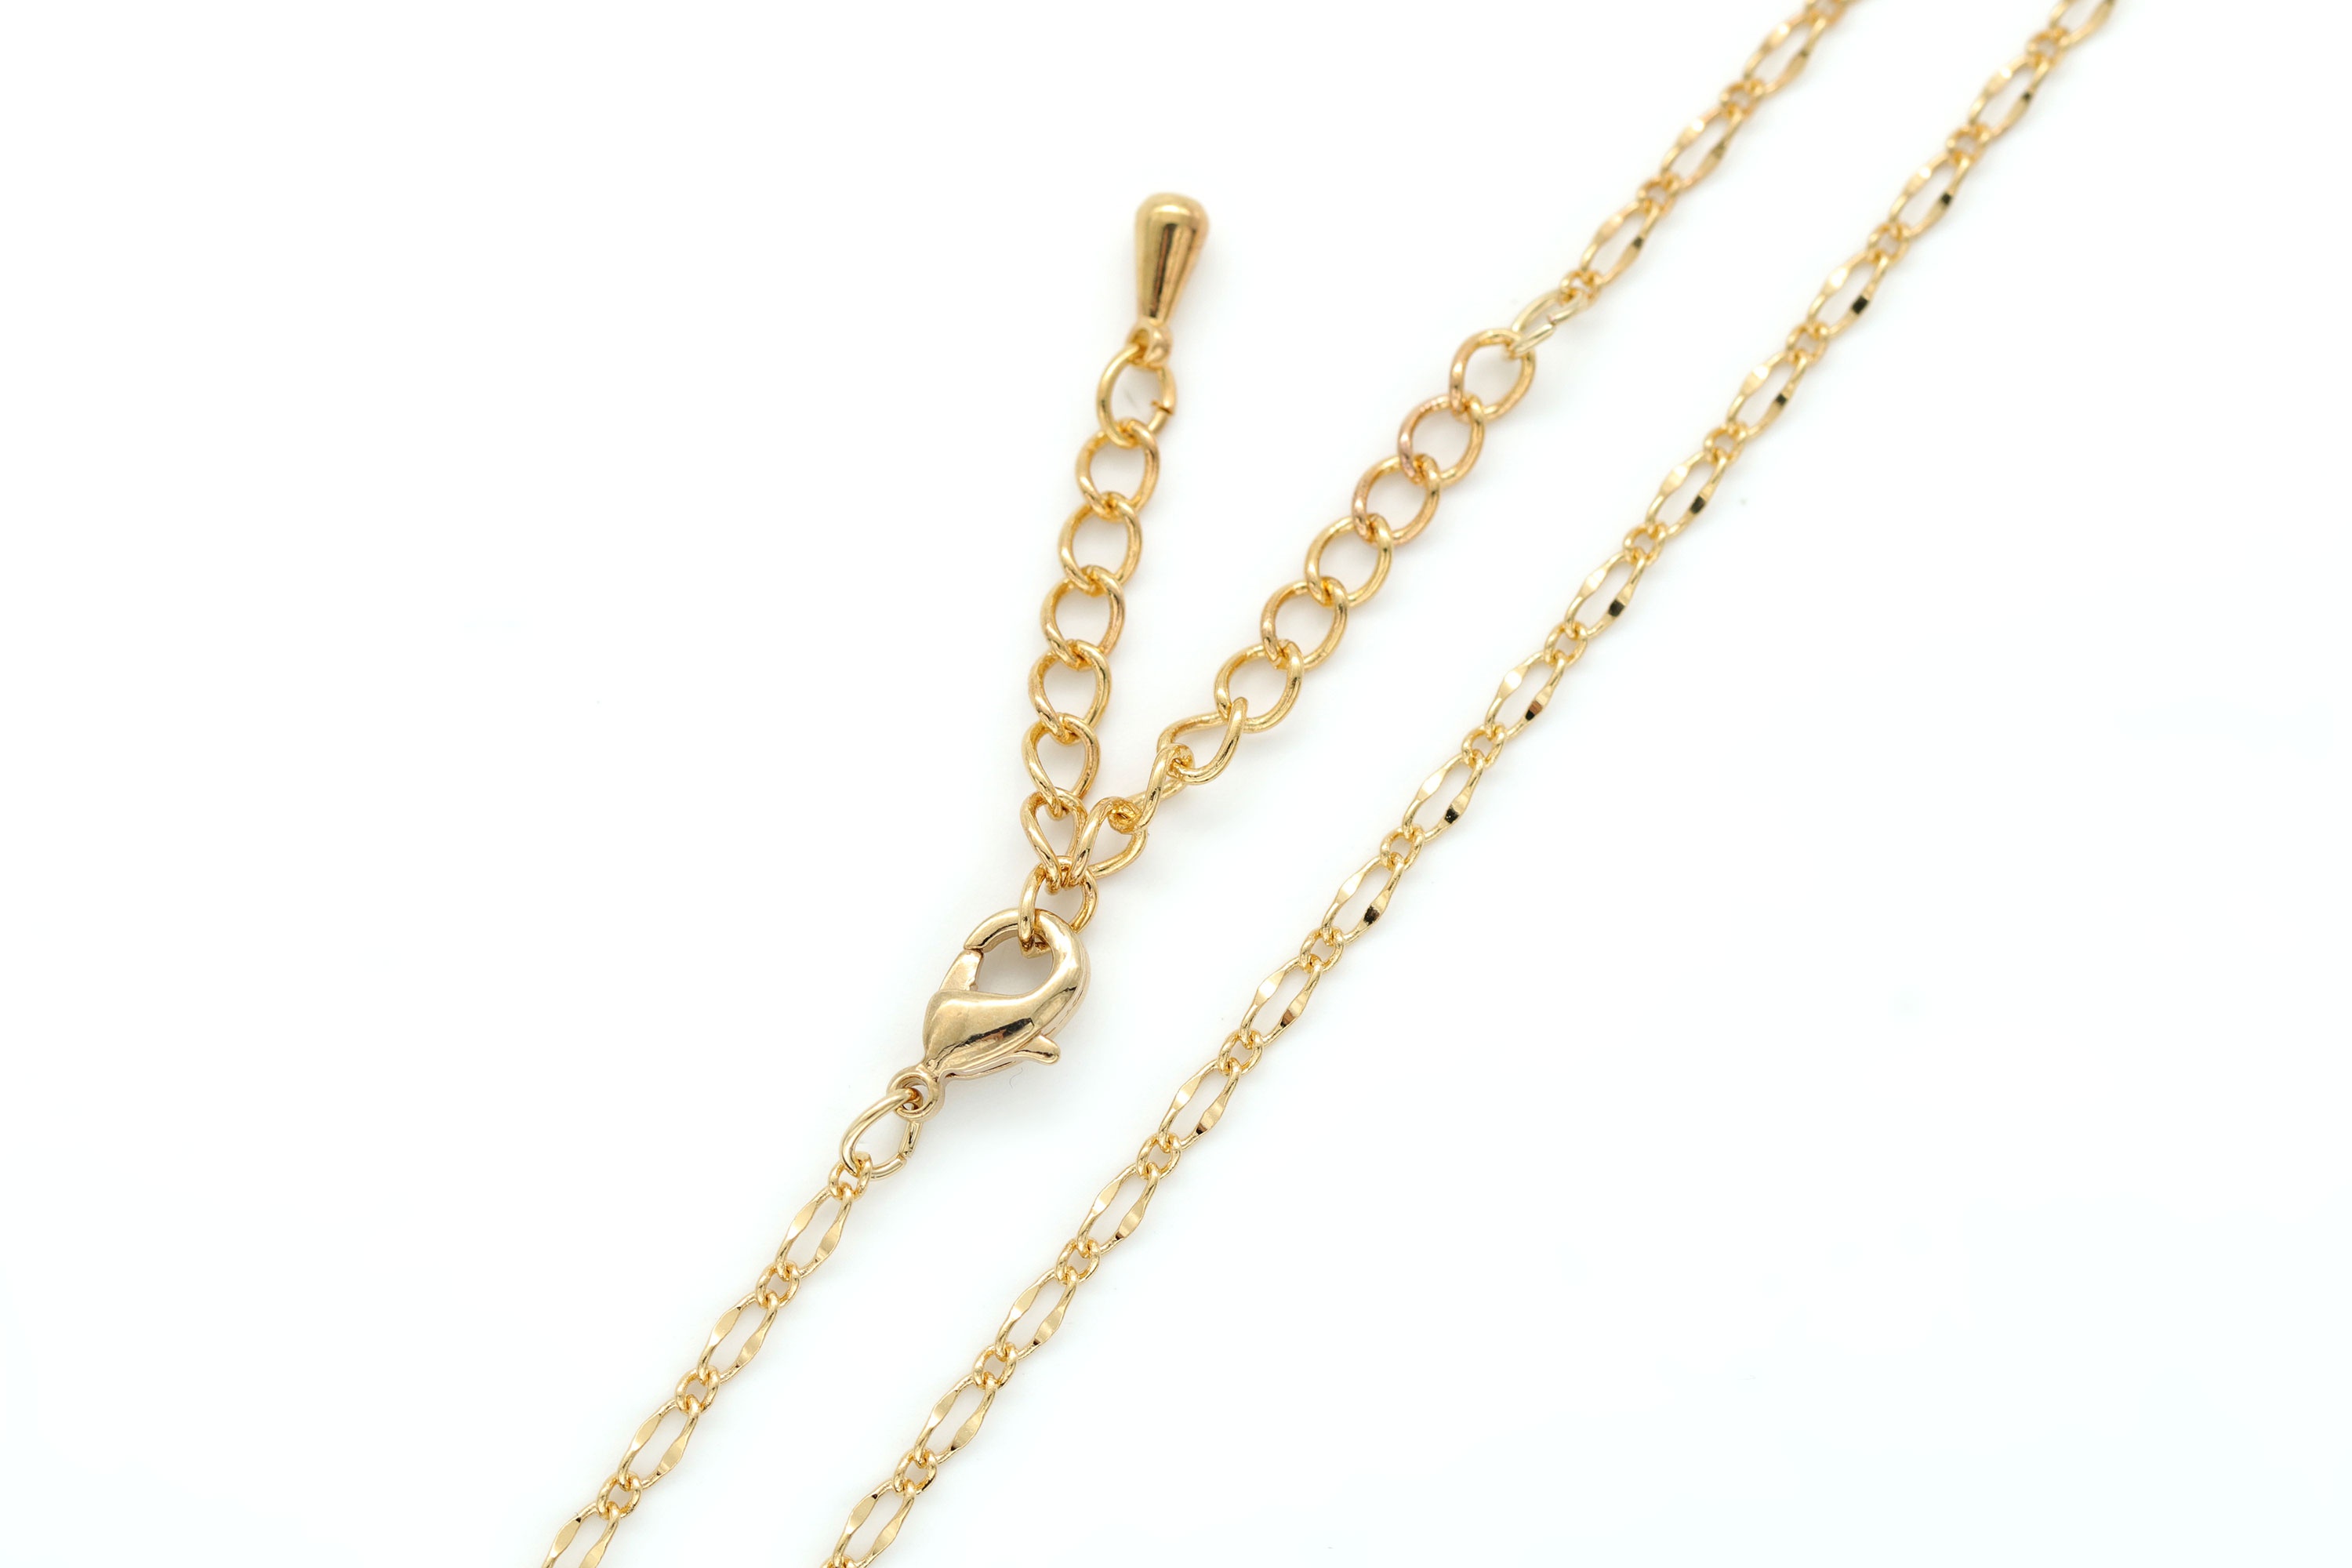 Necklace Making Chain, N0706-G1